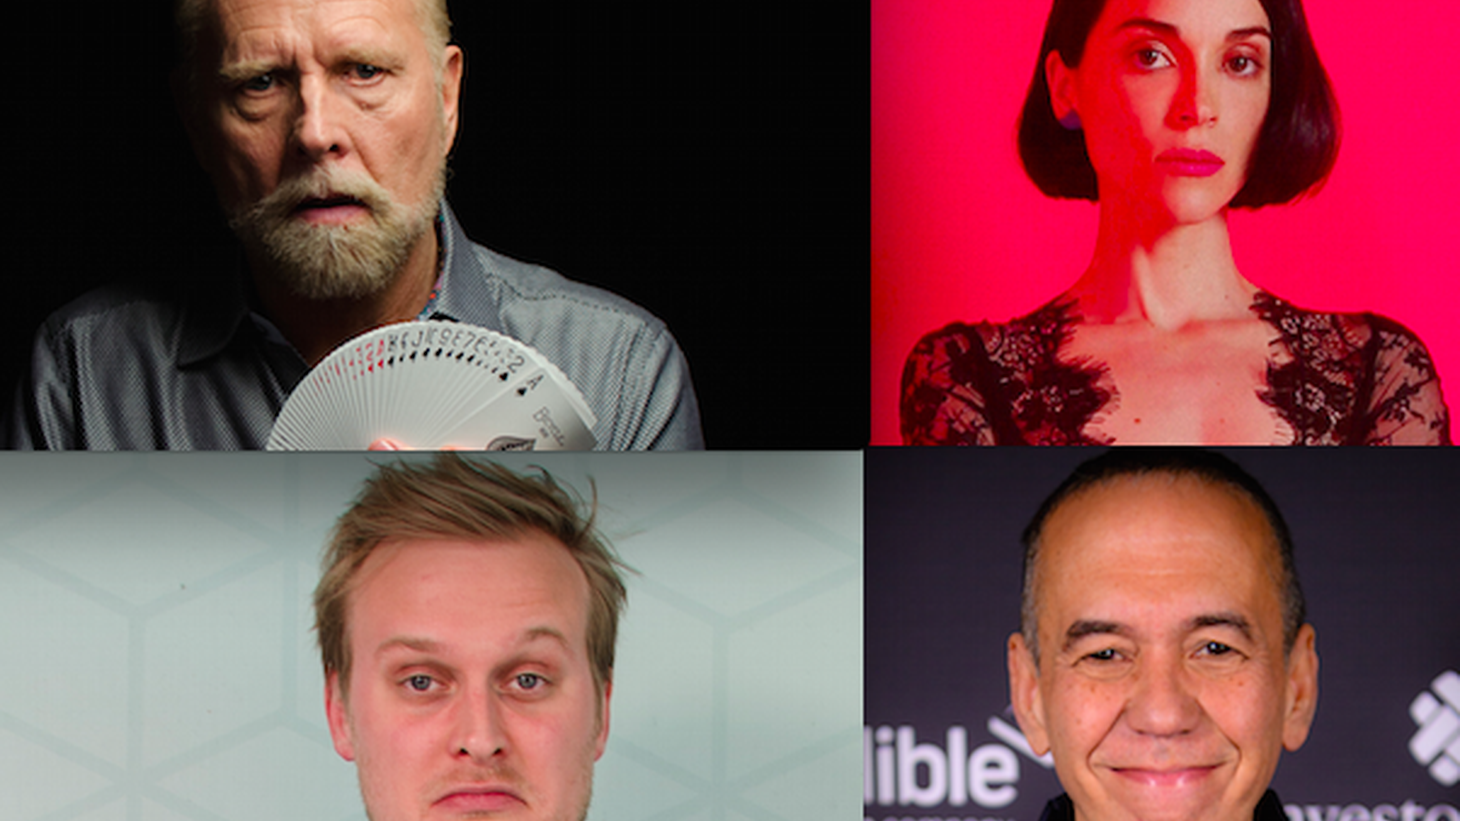 """We present some of the great entertainers we met on the show this year: Blind magician Richard Turner, """"Search Party"""" actor John Early, comedian Gilbert Gottfried, and musician Annie Clark aka St. Vincent."""